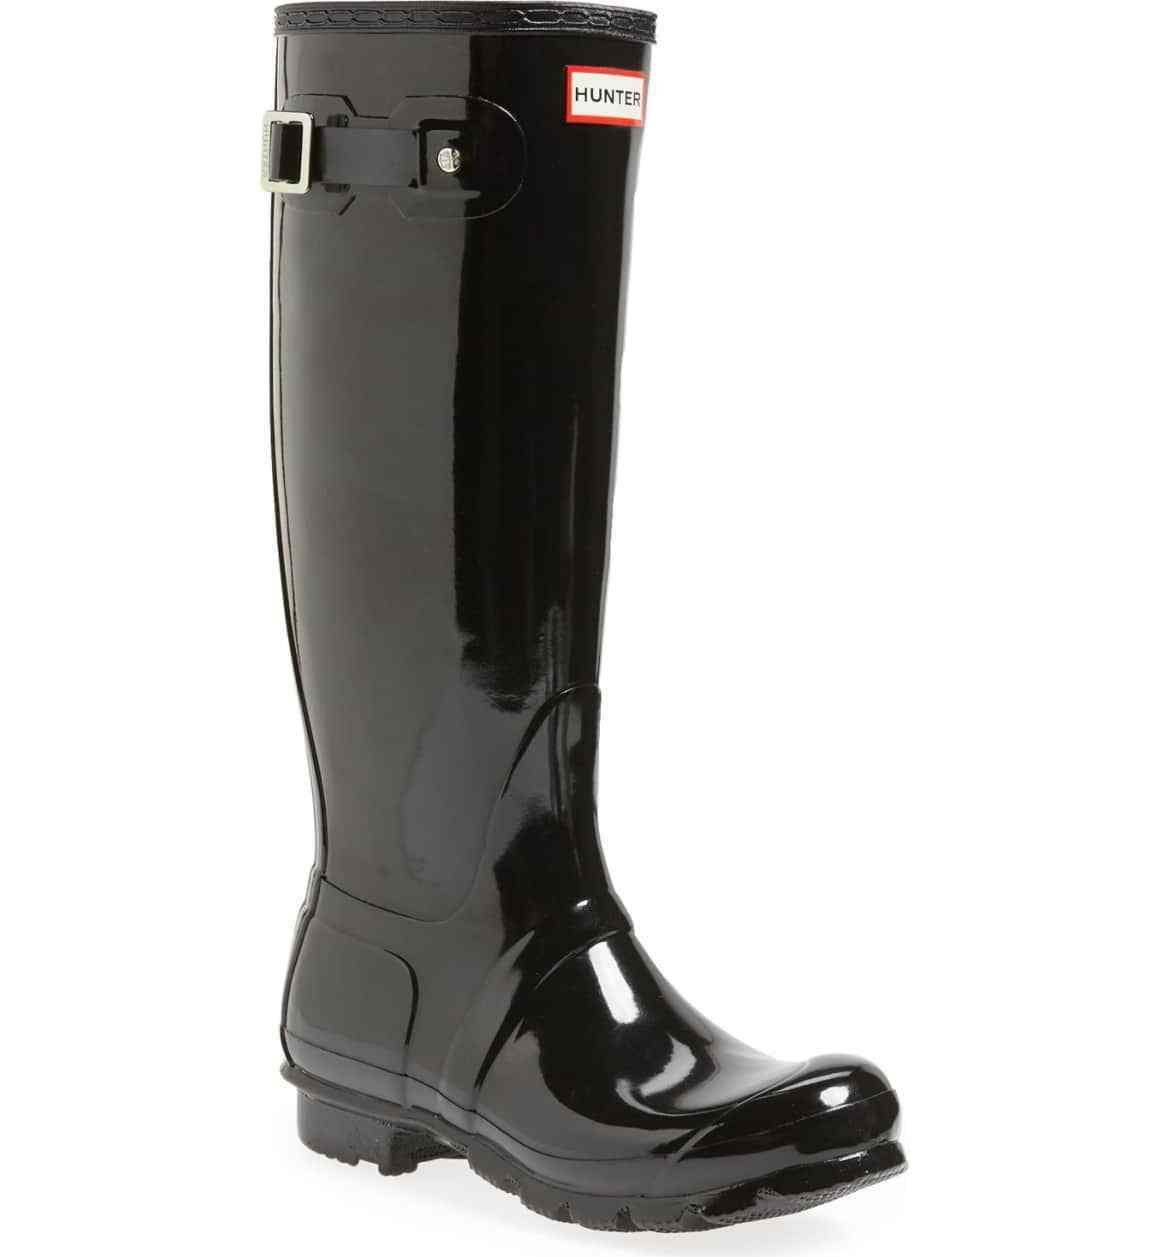 Hunter Women's Original High Gloss Waterproof Rain Boots Size Size Size 10 Black 2fb91c